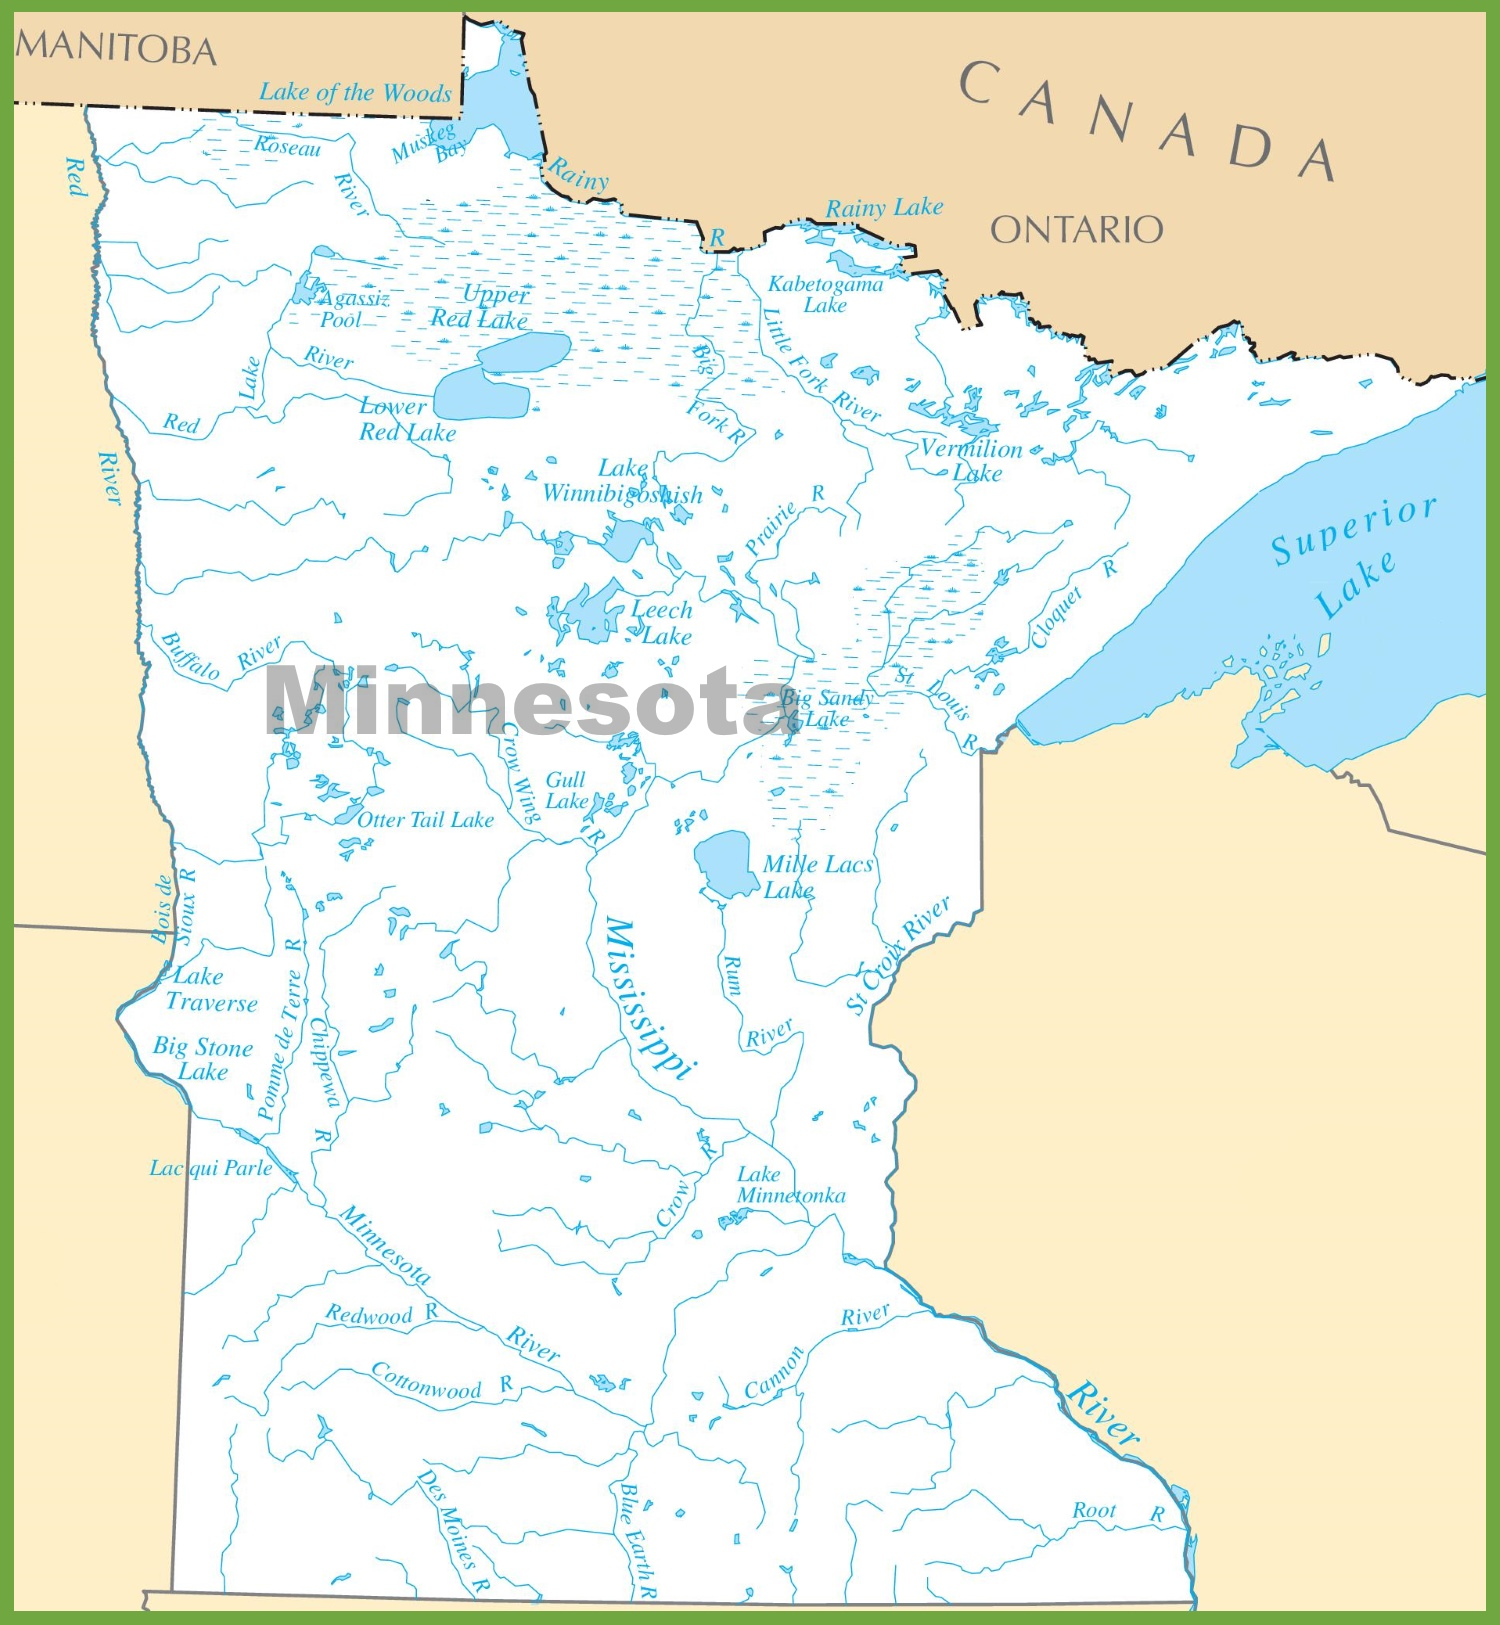 Map Minnesota Lakes Free Wallpaper For MAPS Full Maps - Mn lake maps free